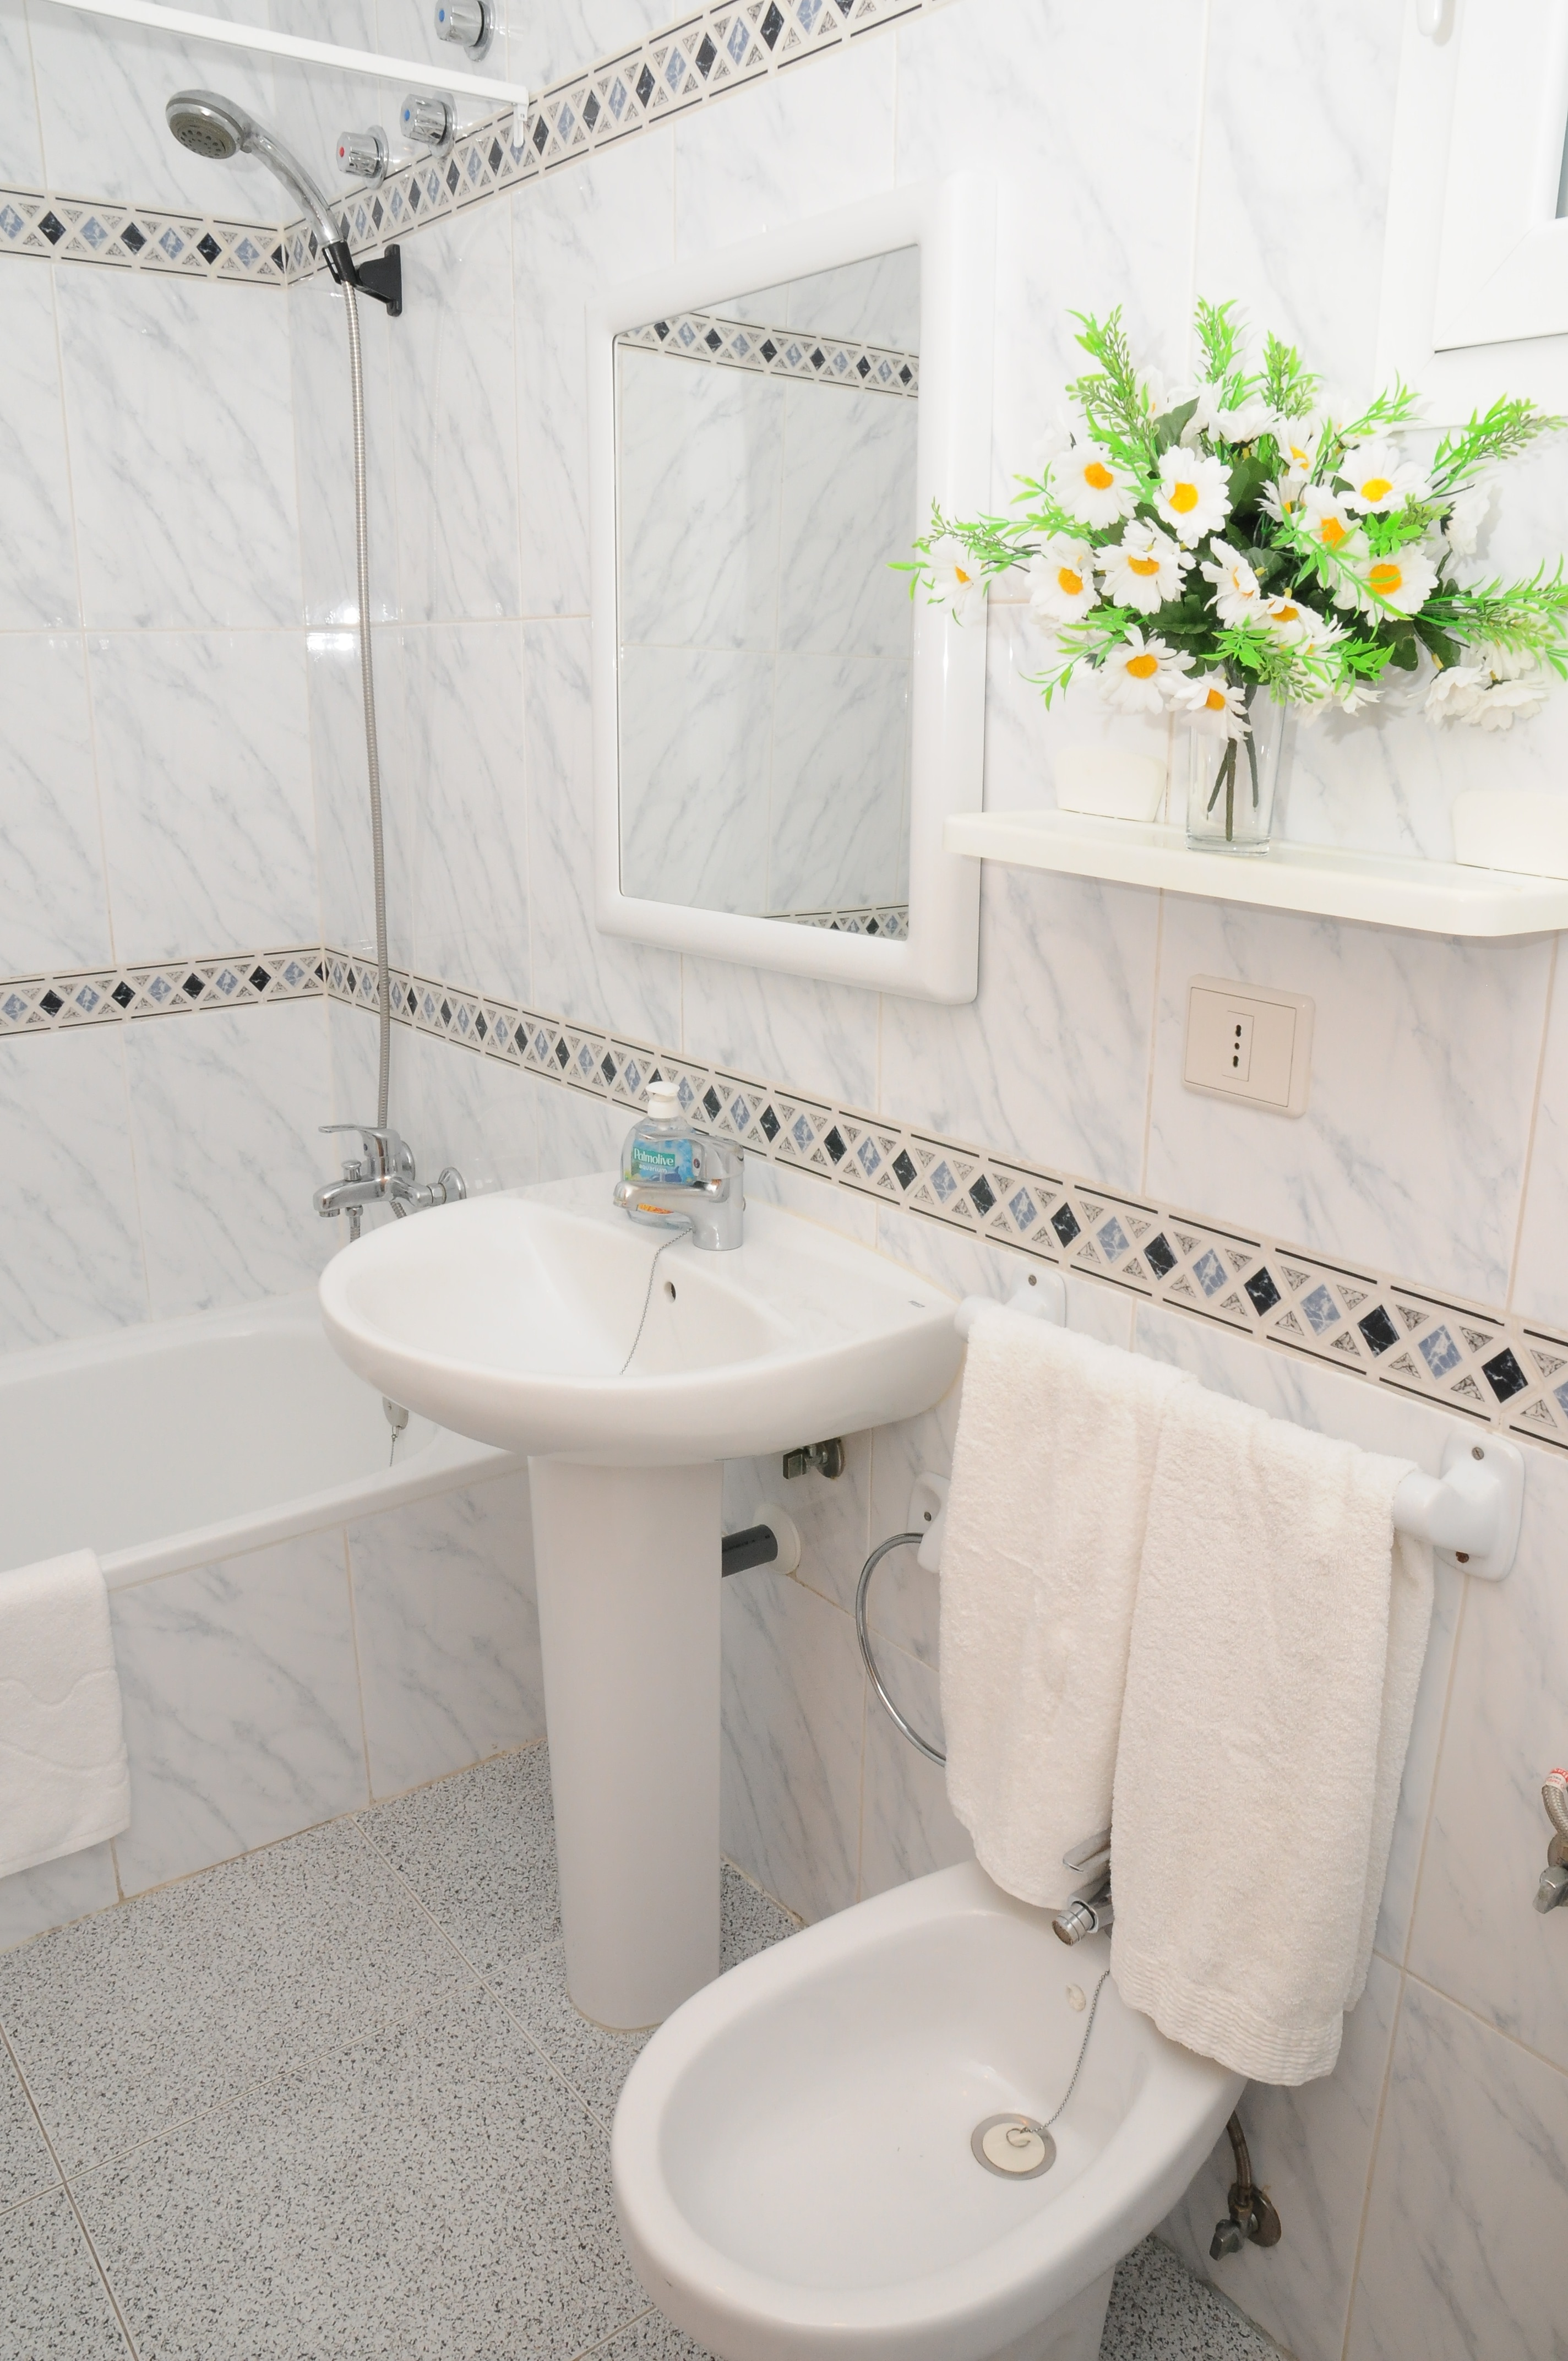 Toilet with bath and bidet